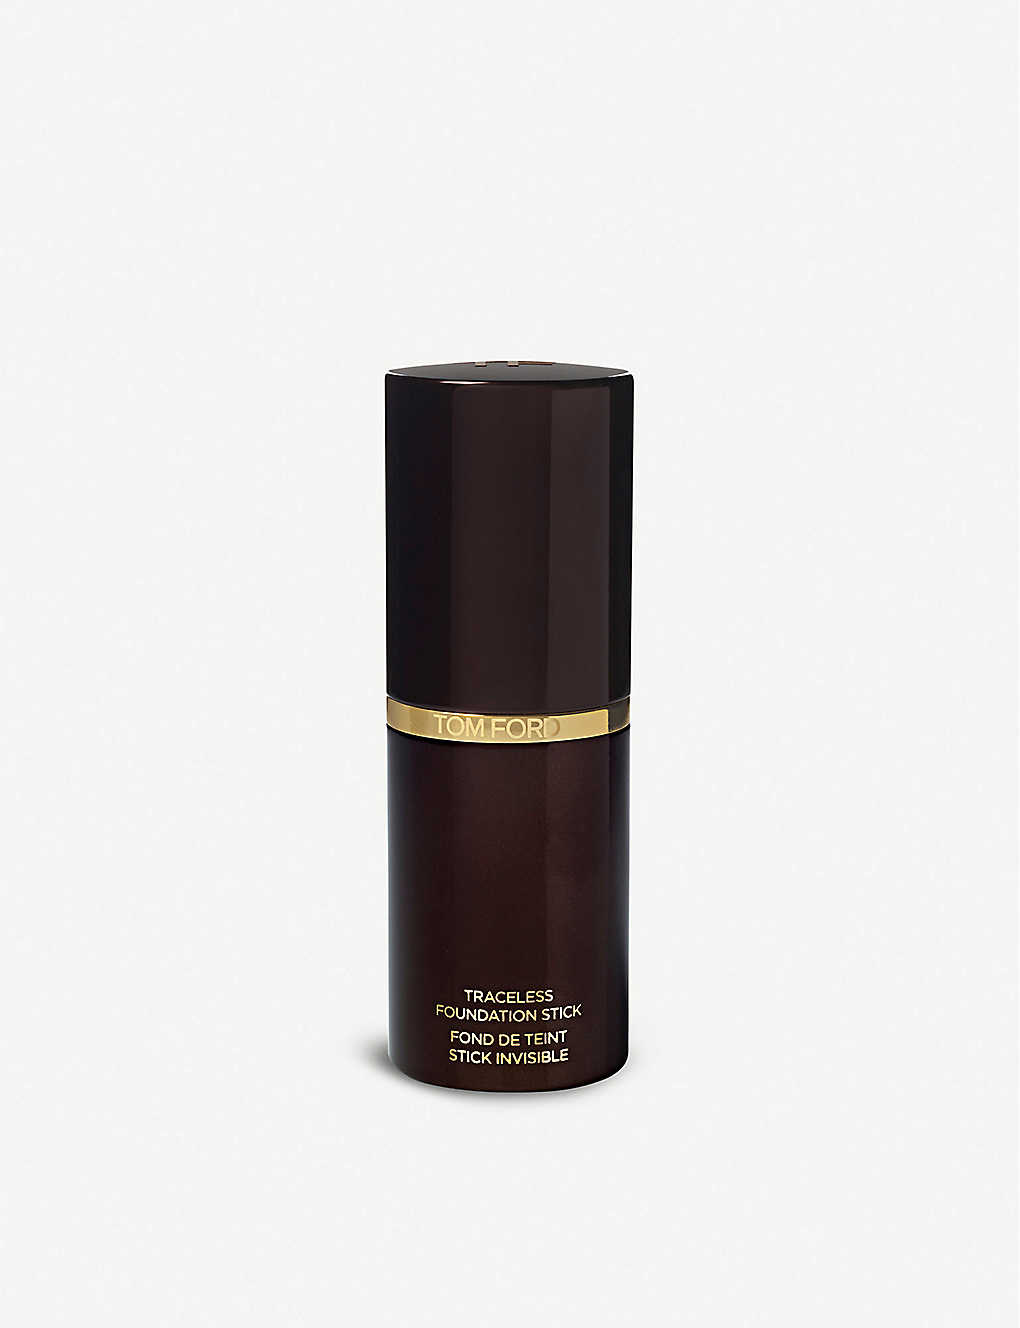 84accd0e2f4 TOM FORD - Traceless Foundation Stick